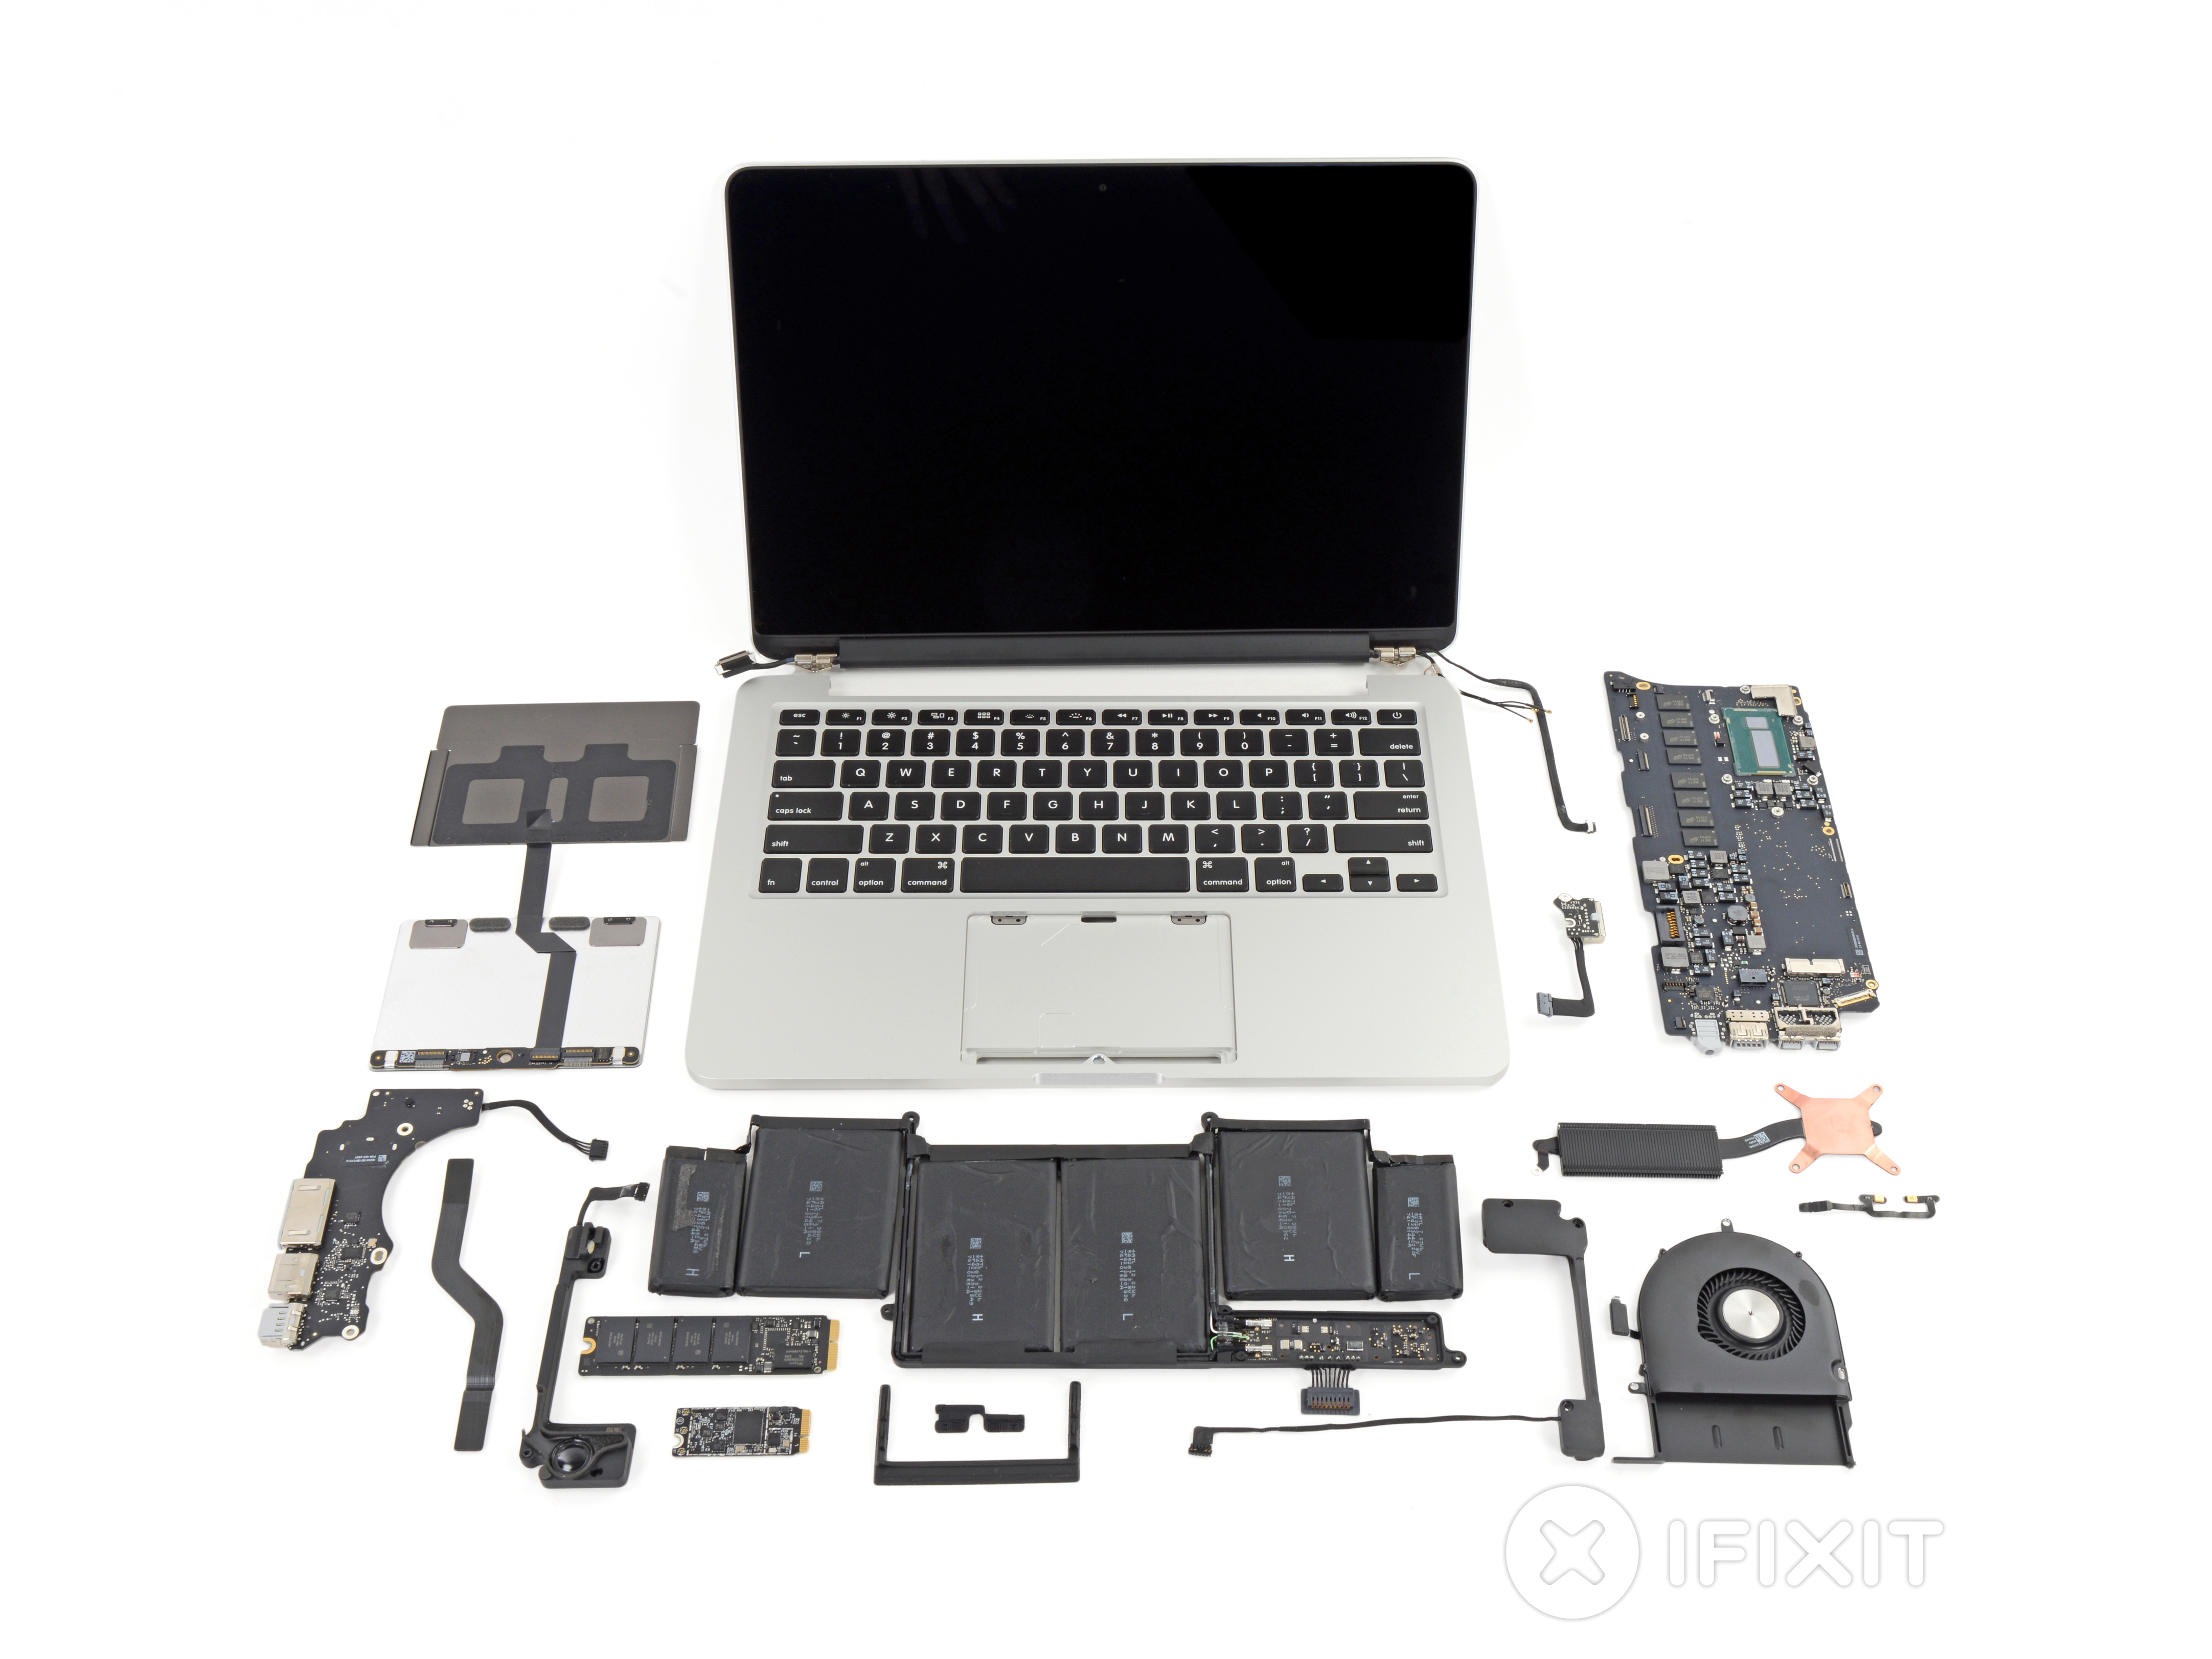 Macbook pro 13 retina display late 2013 teardown ifixit for Ecran pc retina